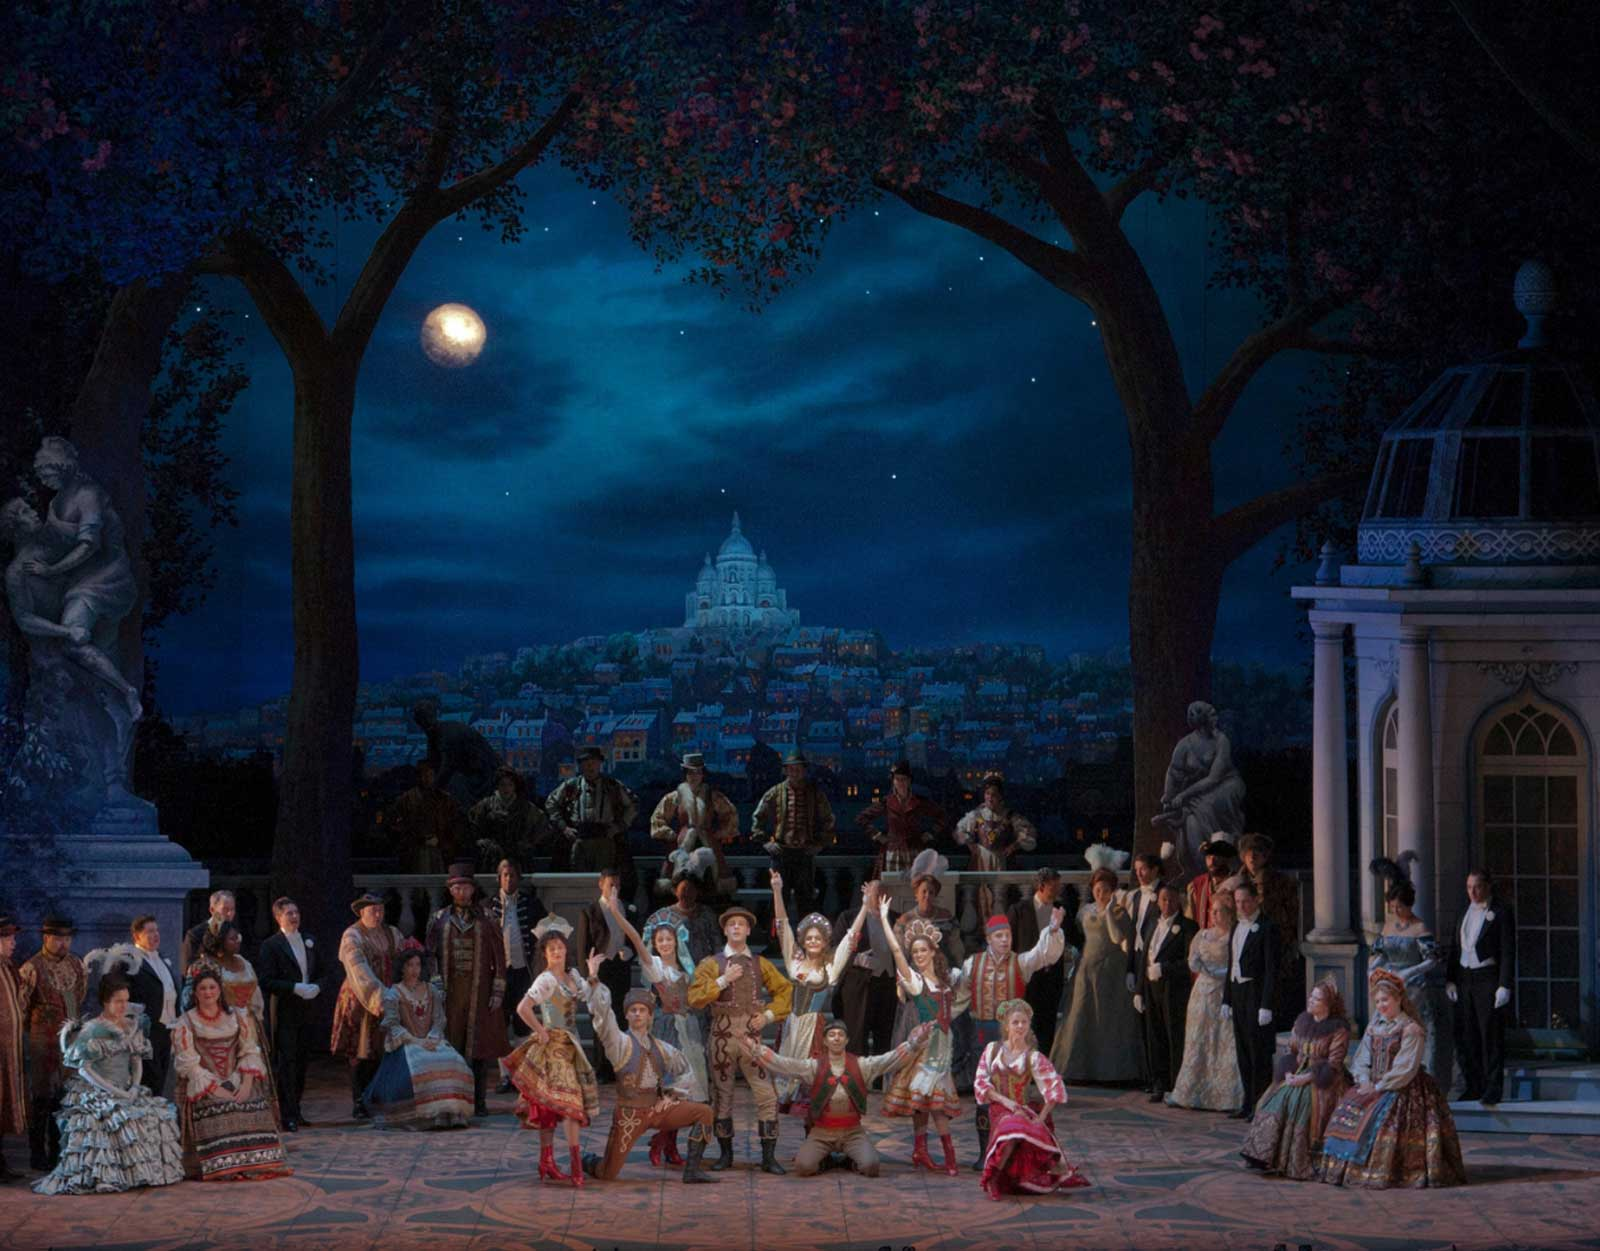 The cast performs a Pontevedrian Folk Dance in Hanna's Garden. There are in traditional kolo dance costumes. There is a view of Paris in the background. There is a full moon.